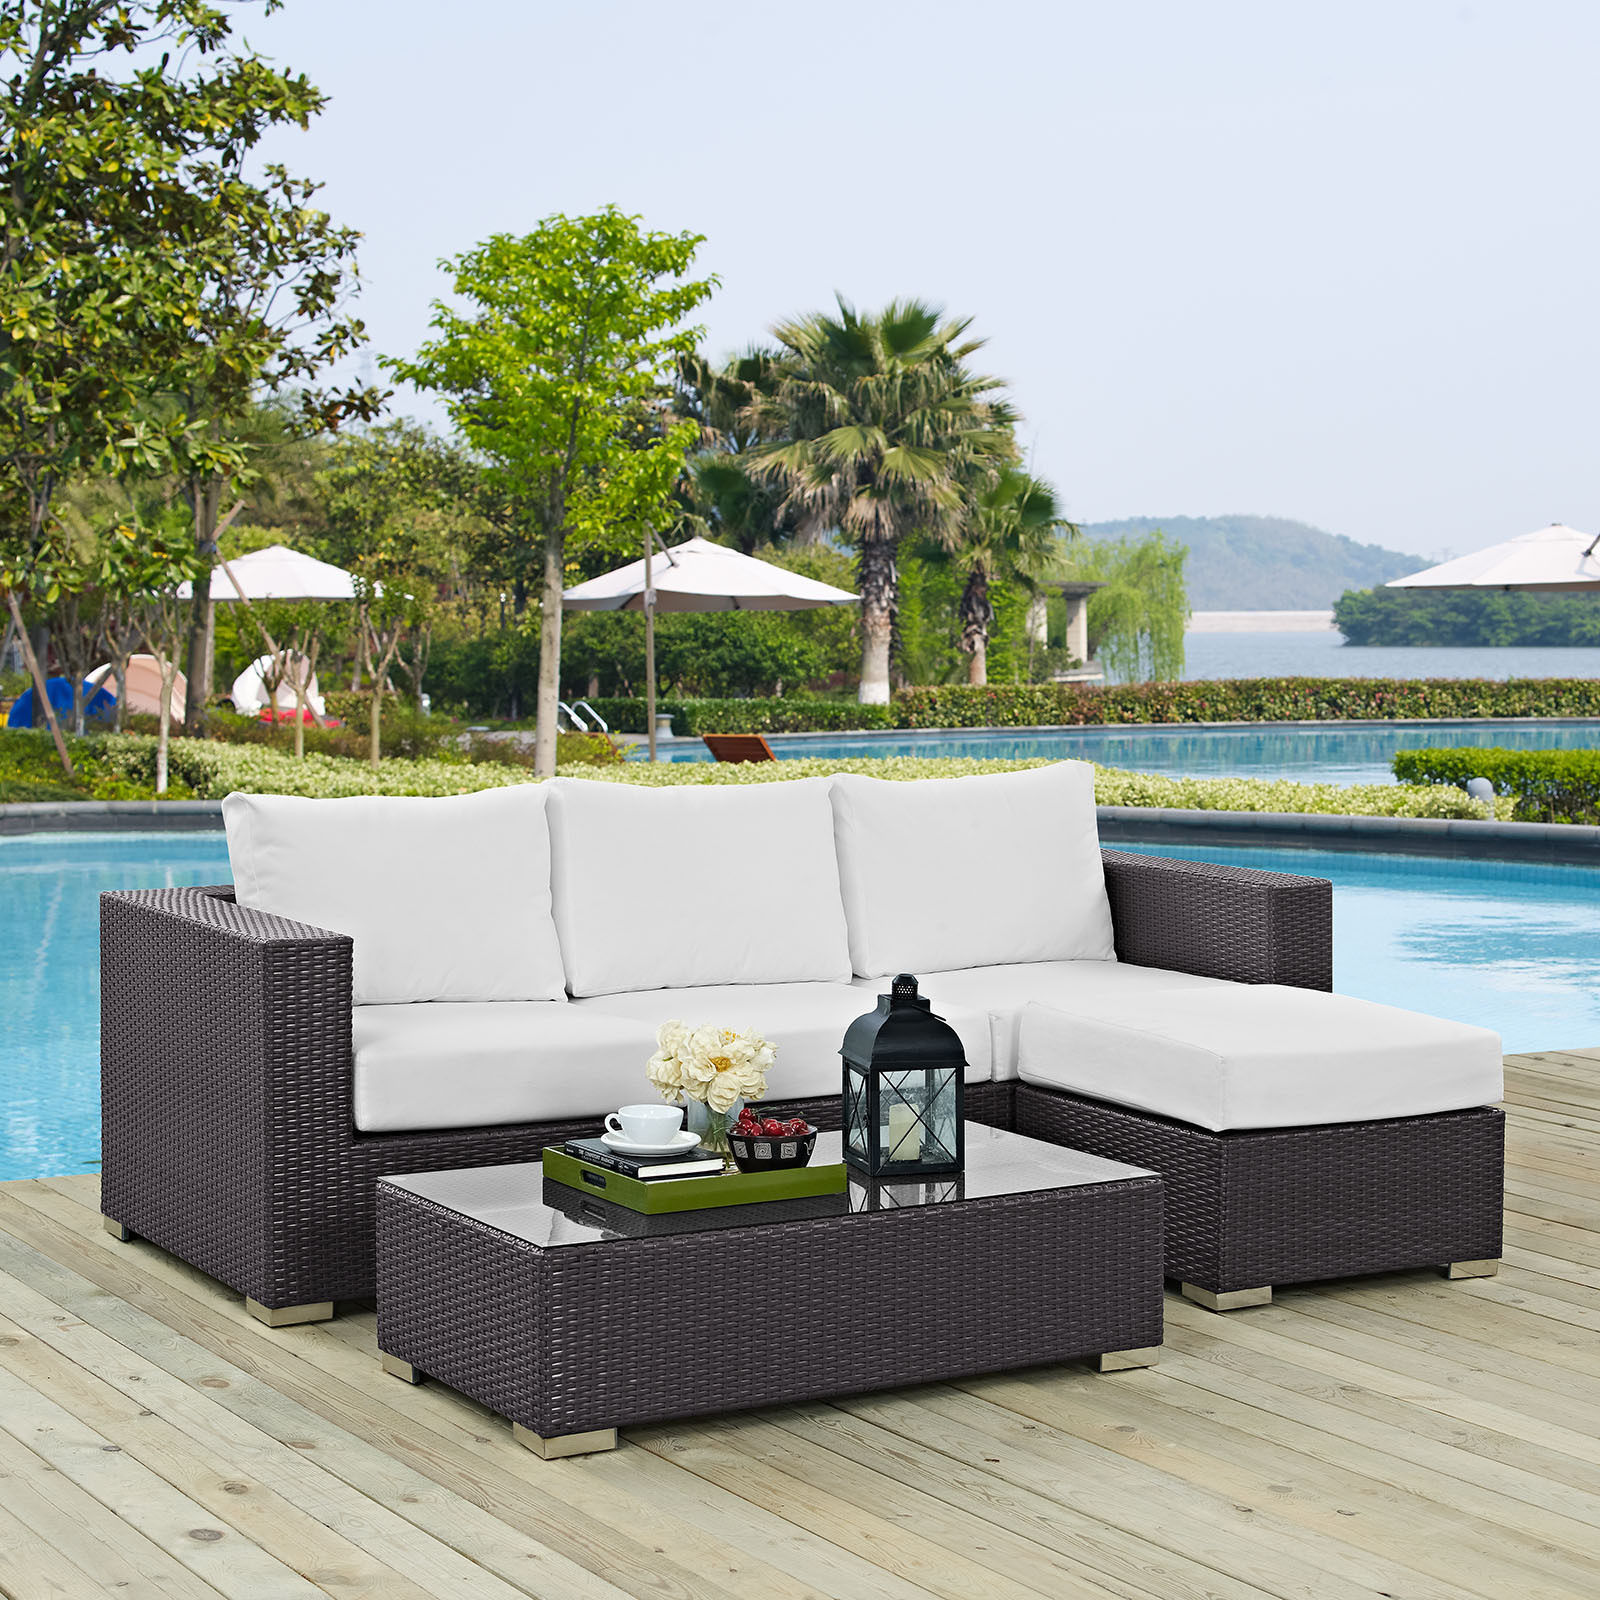 Convene 3 Piece Outdoor Patio Sofa Set Espresso White EEI-2178-EXP-WHI-SET image 3